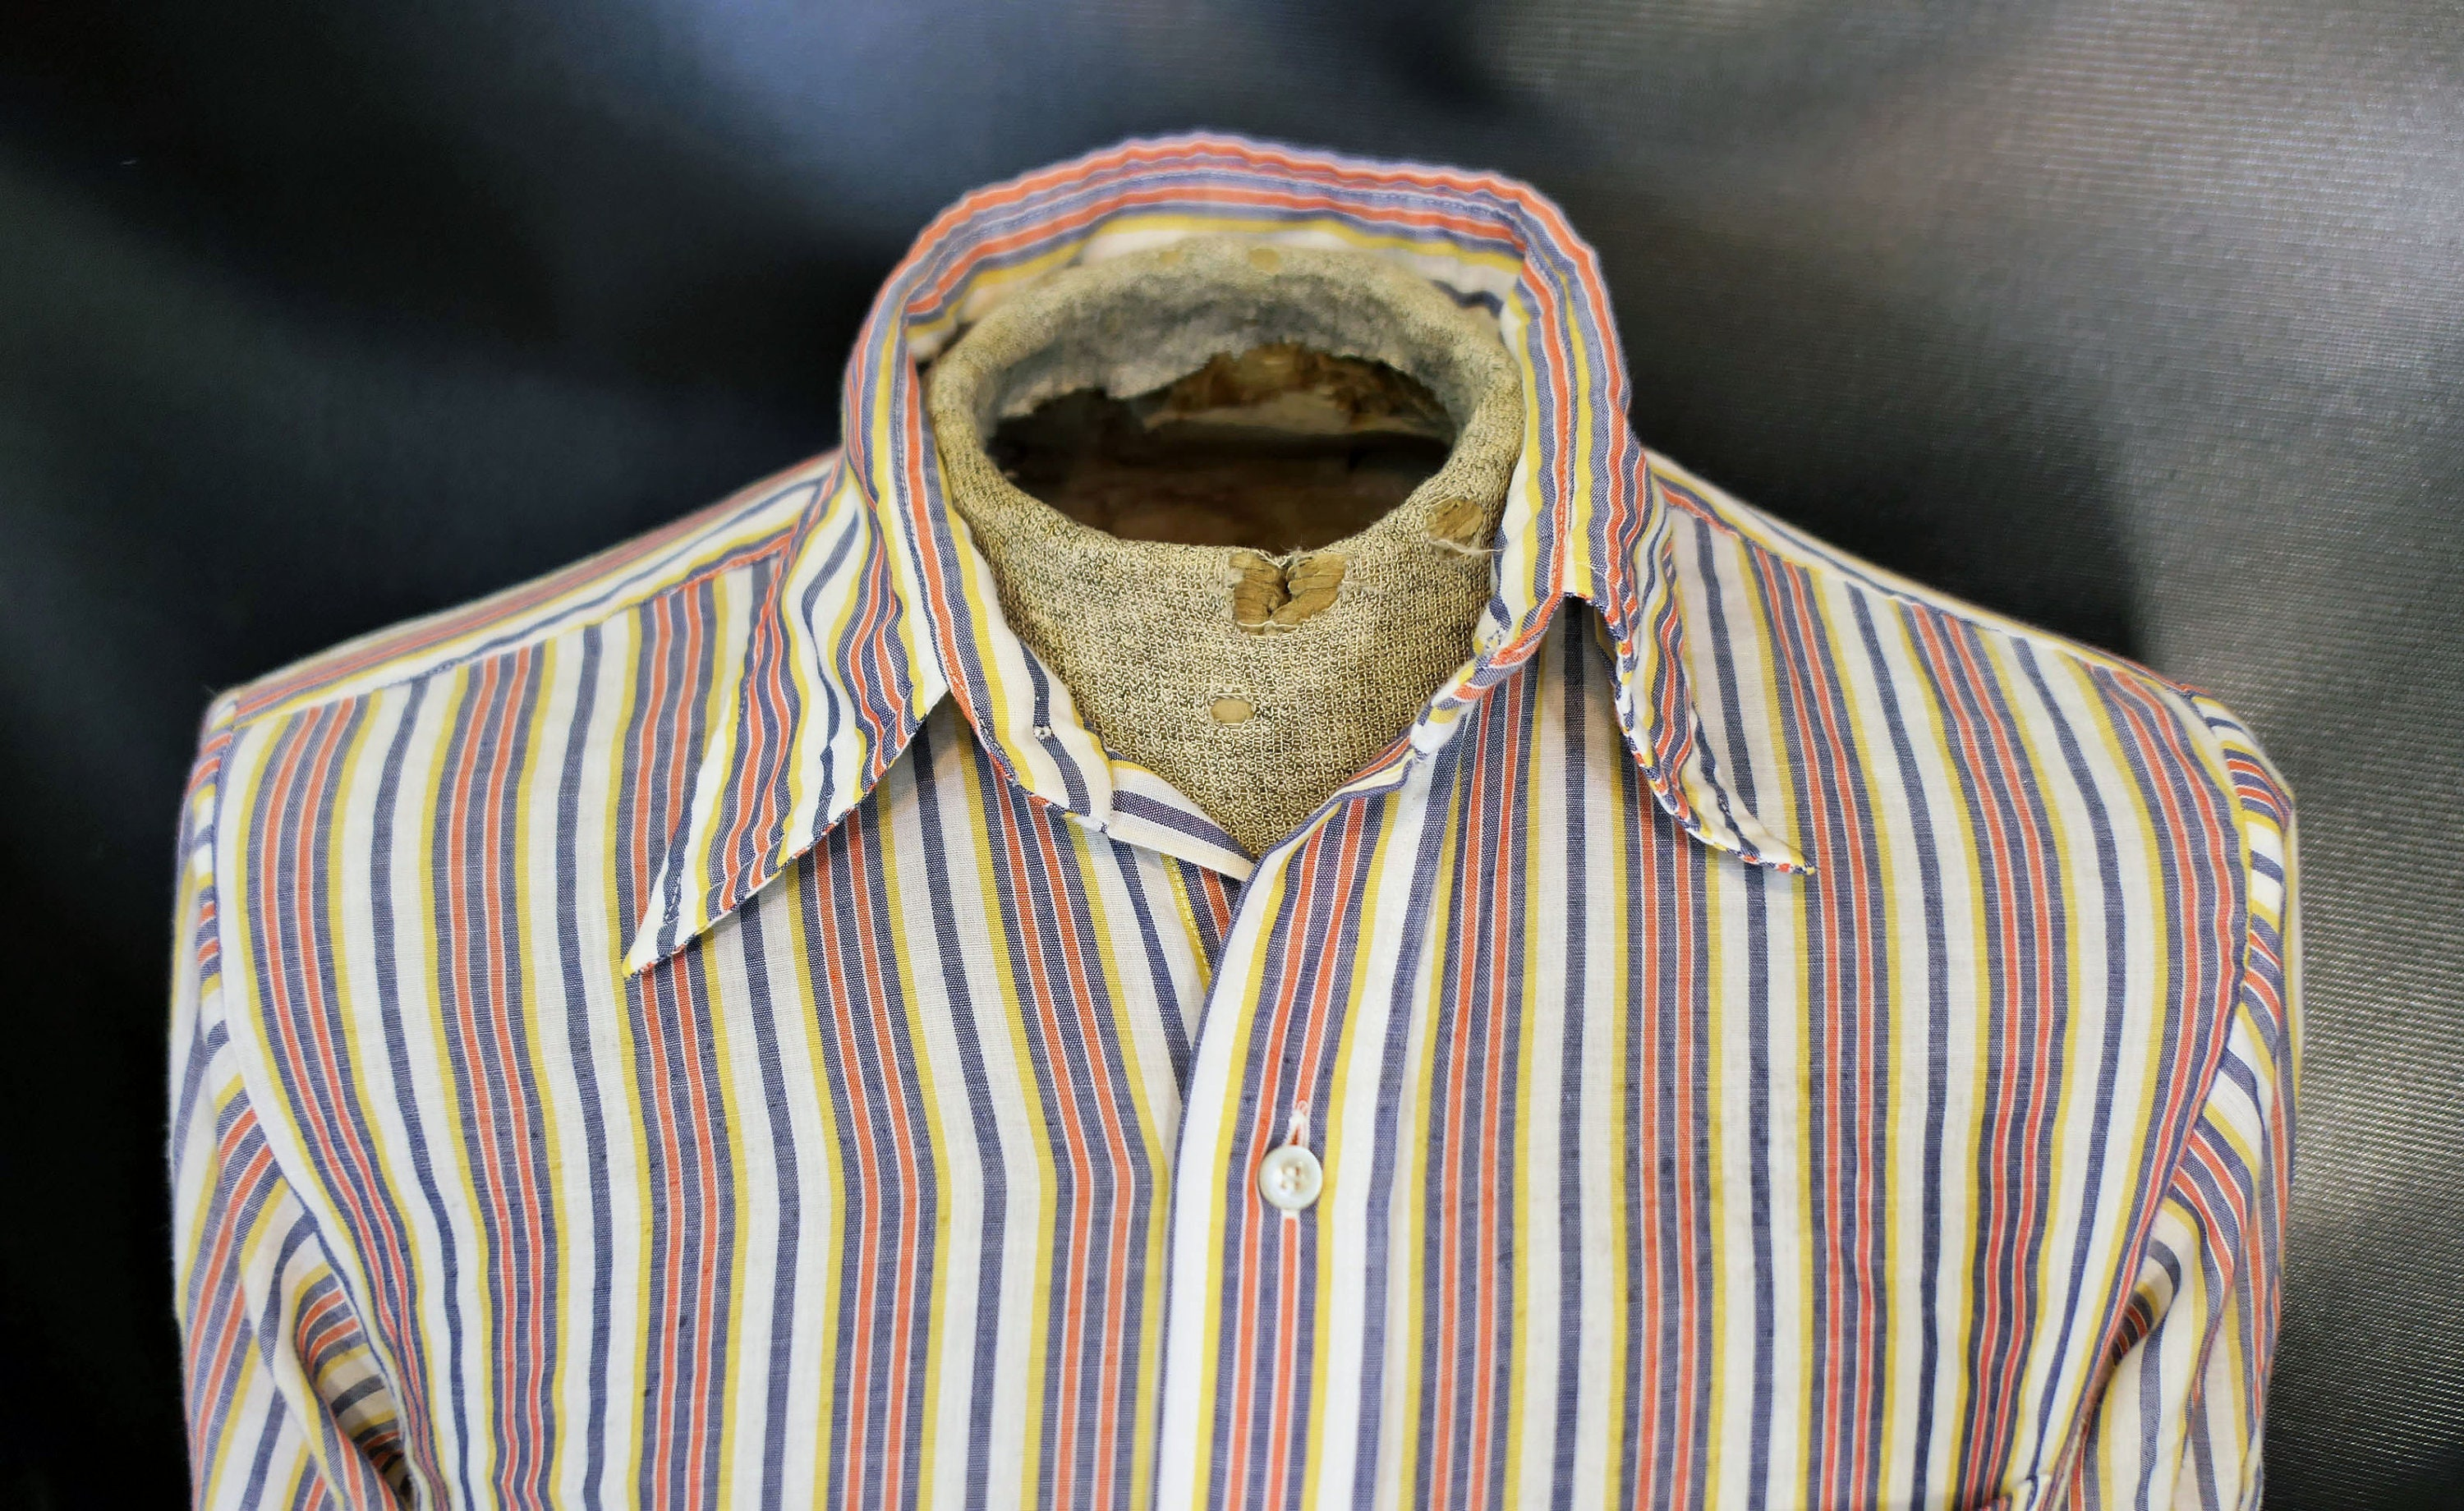 1970s Mens Shirt Styles – Vintage 70s Shirts for Guys Vintage Mens Squire Elbeco Blue Red Yellow Striped Dress Shirt Size 1960s 1970s Large $0.00 AT vintagedancer.com